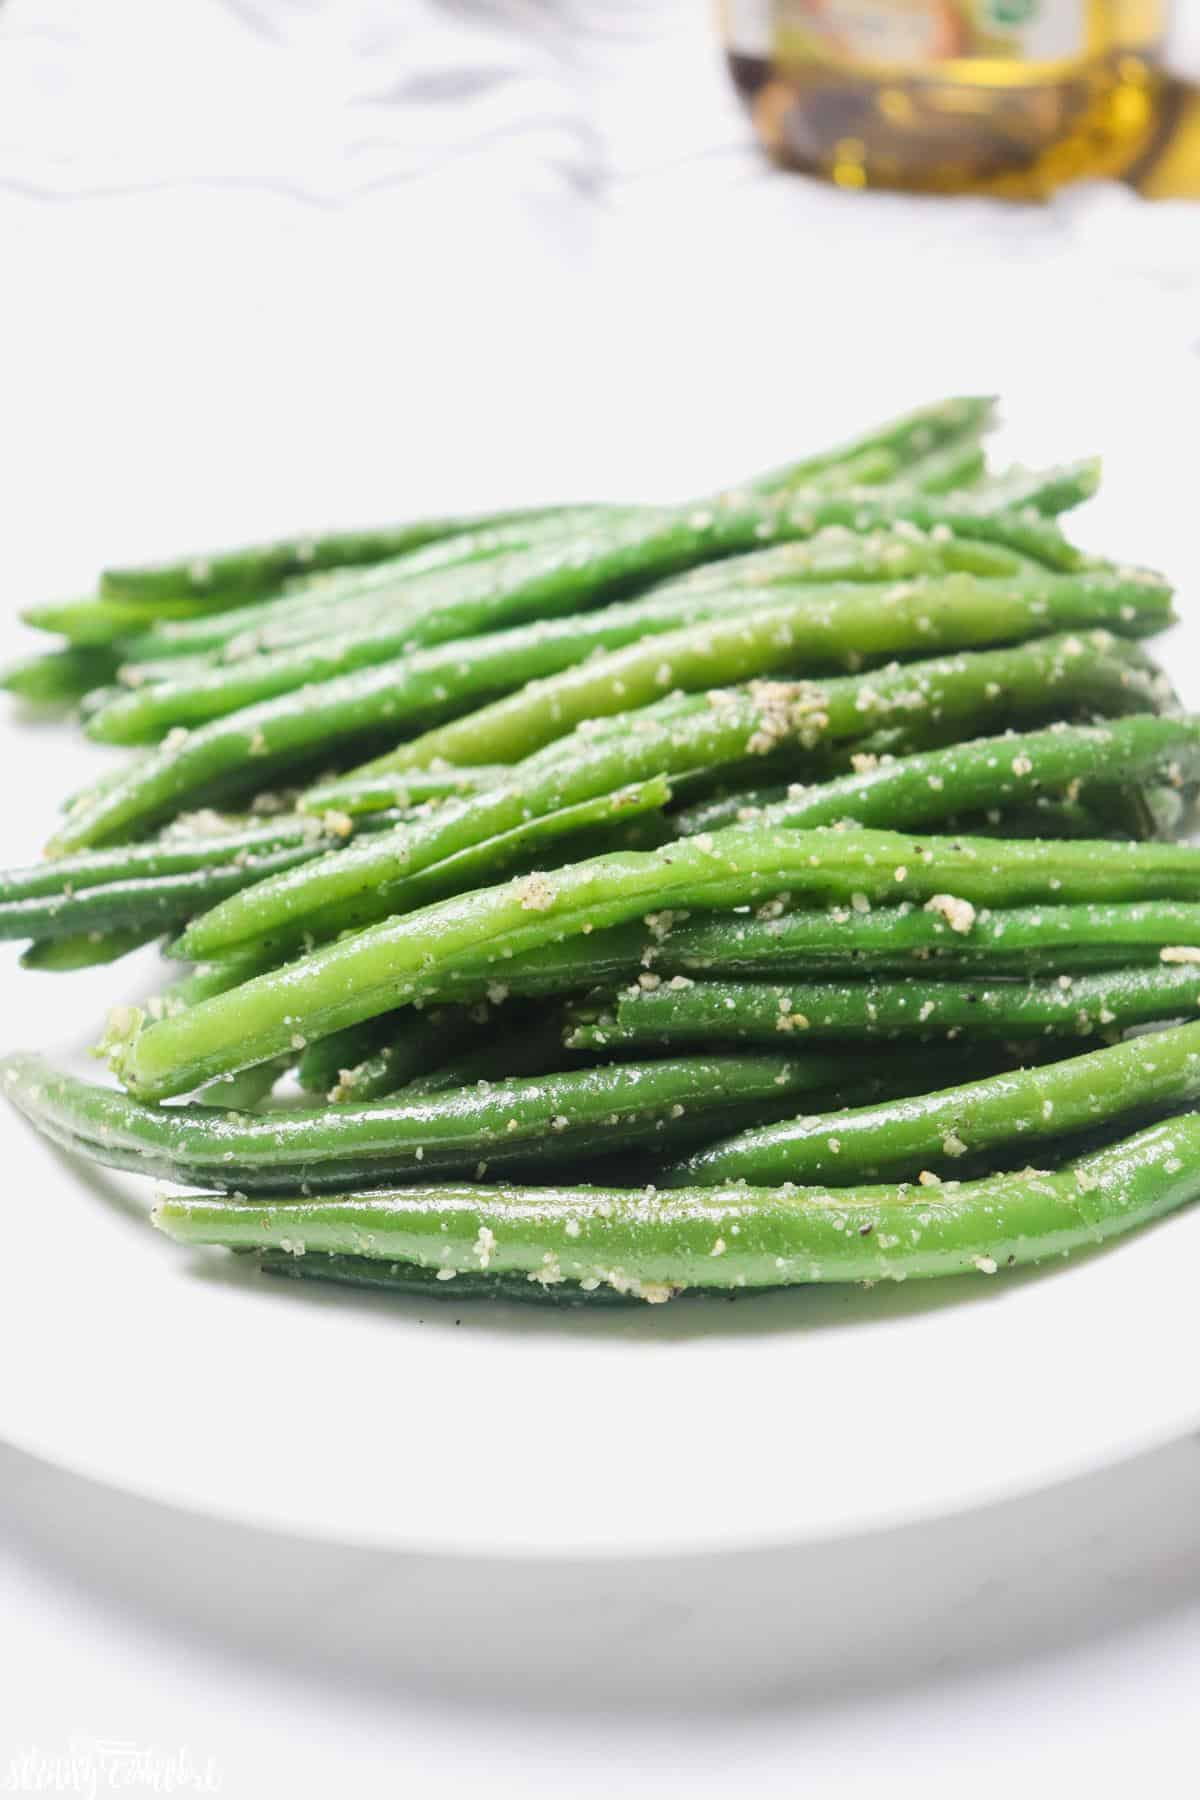 Cooked garlic Parmesan green beans on plate